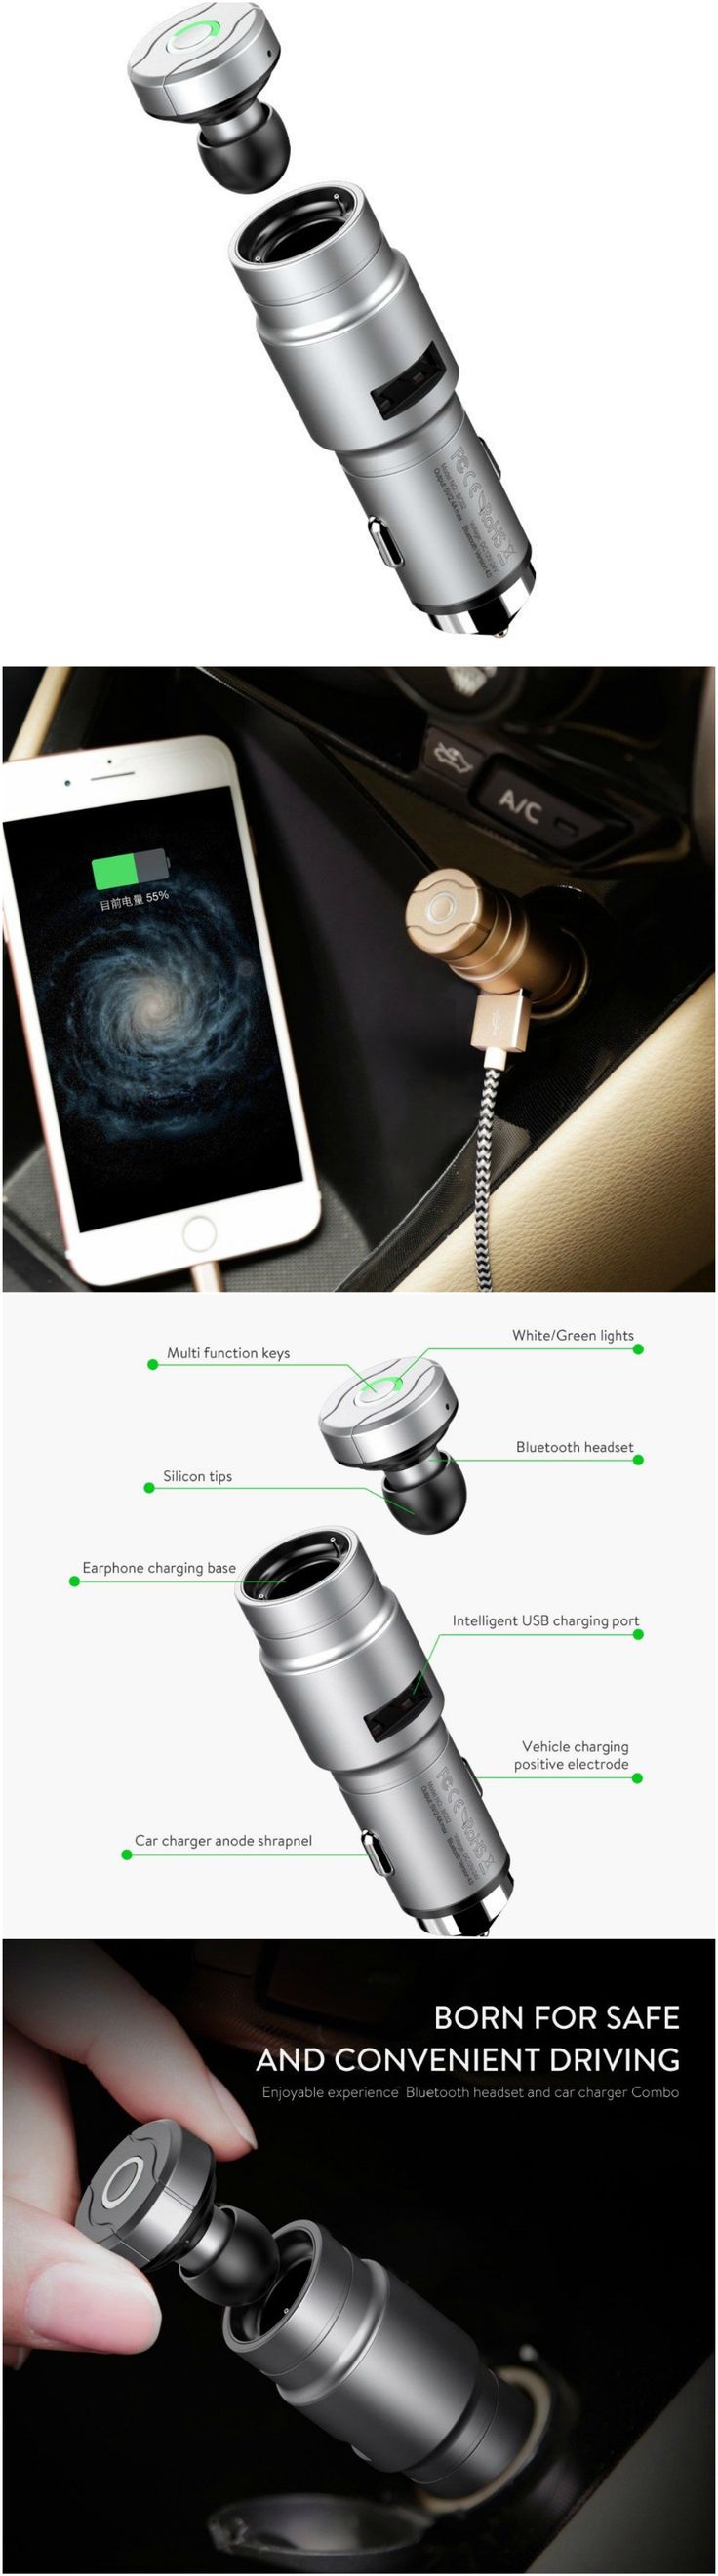 One-piece earbud headset for driving, sports, speakers, running, workout and the gym. Great gift accessory products for home, car audio, androids, Windows 10, laptop, Macbook and iPhone 7 users, men and women and Apple shoppers who are active in yoga, cardio health and fitness #Technology